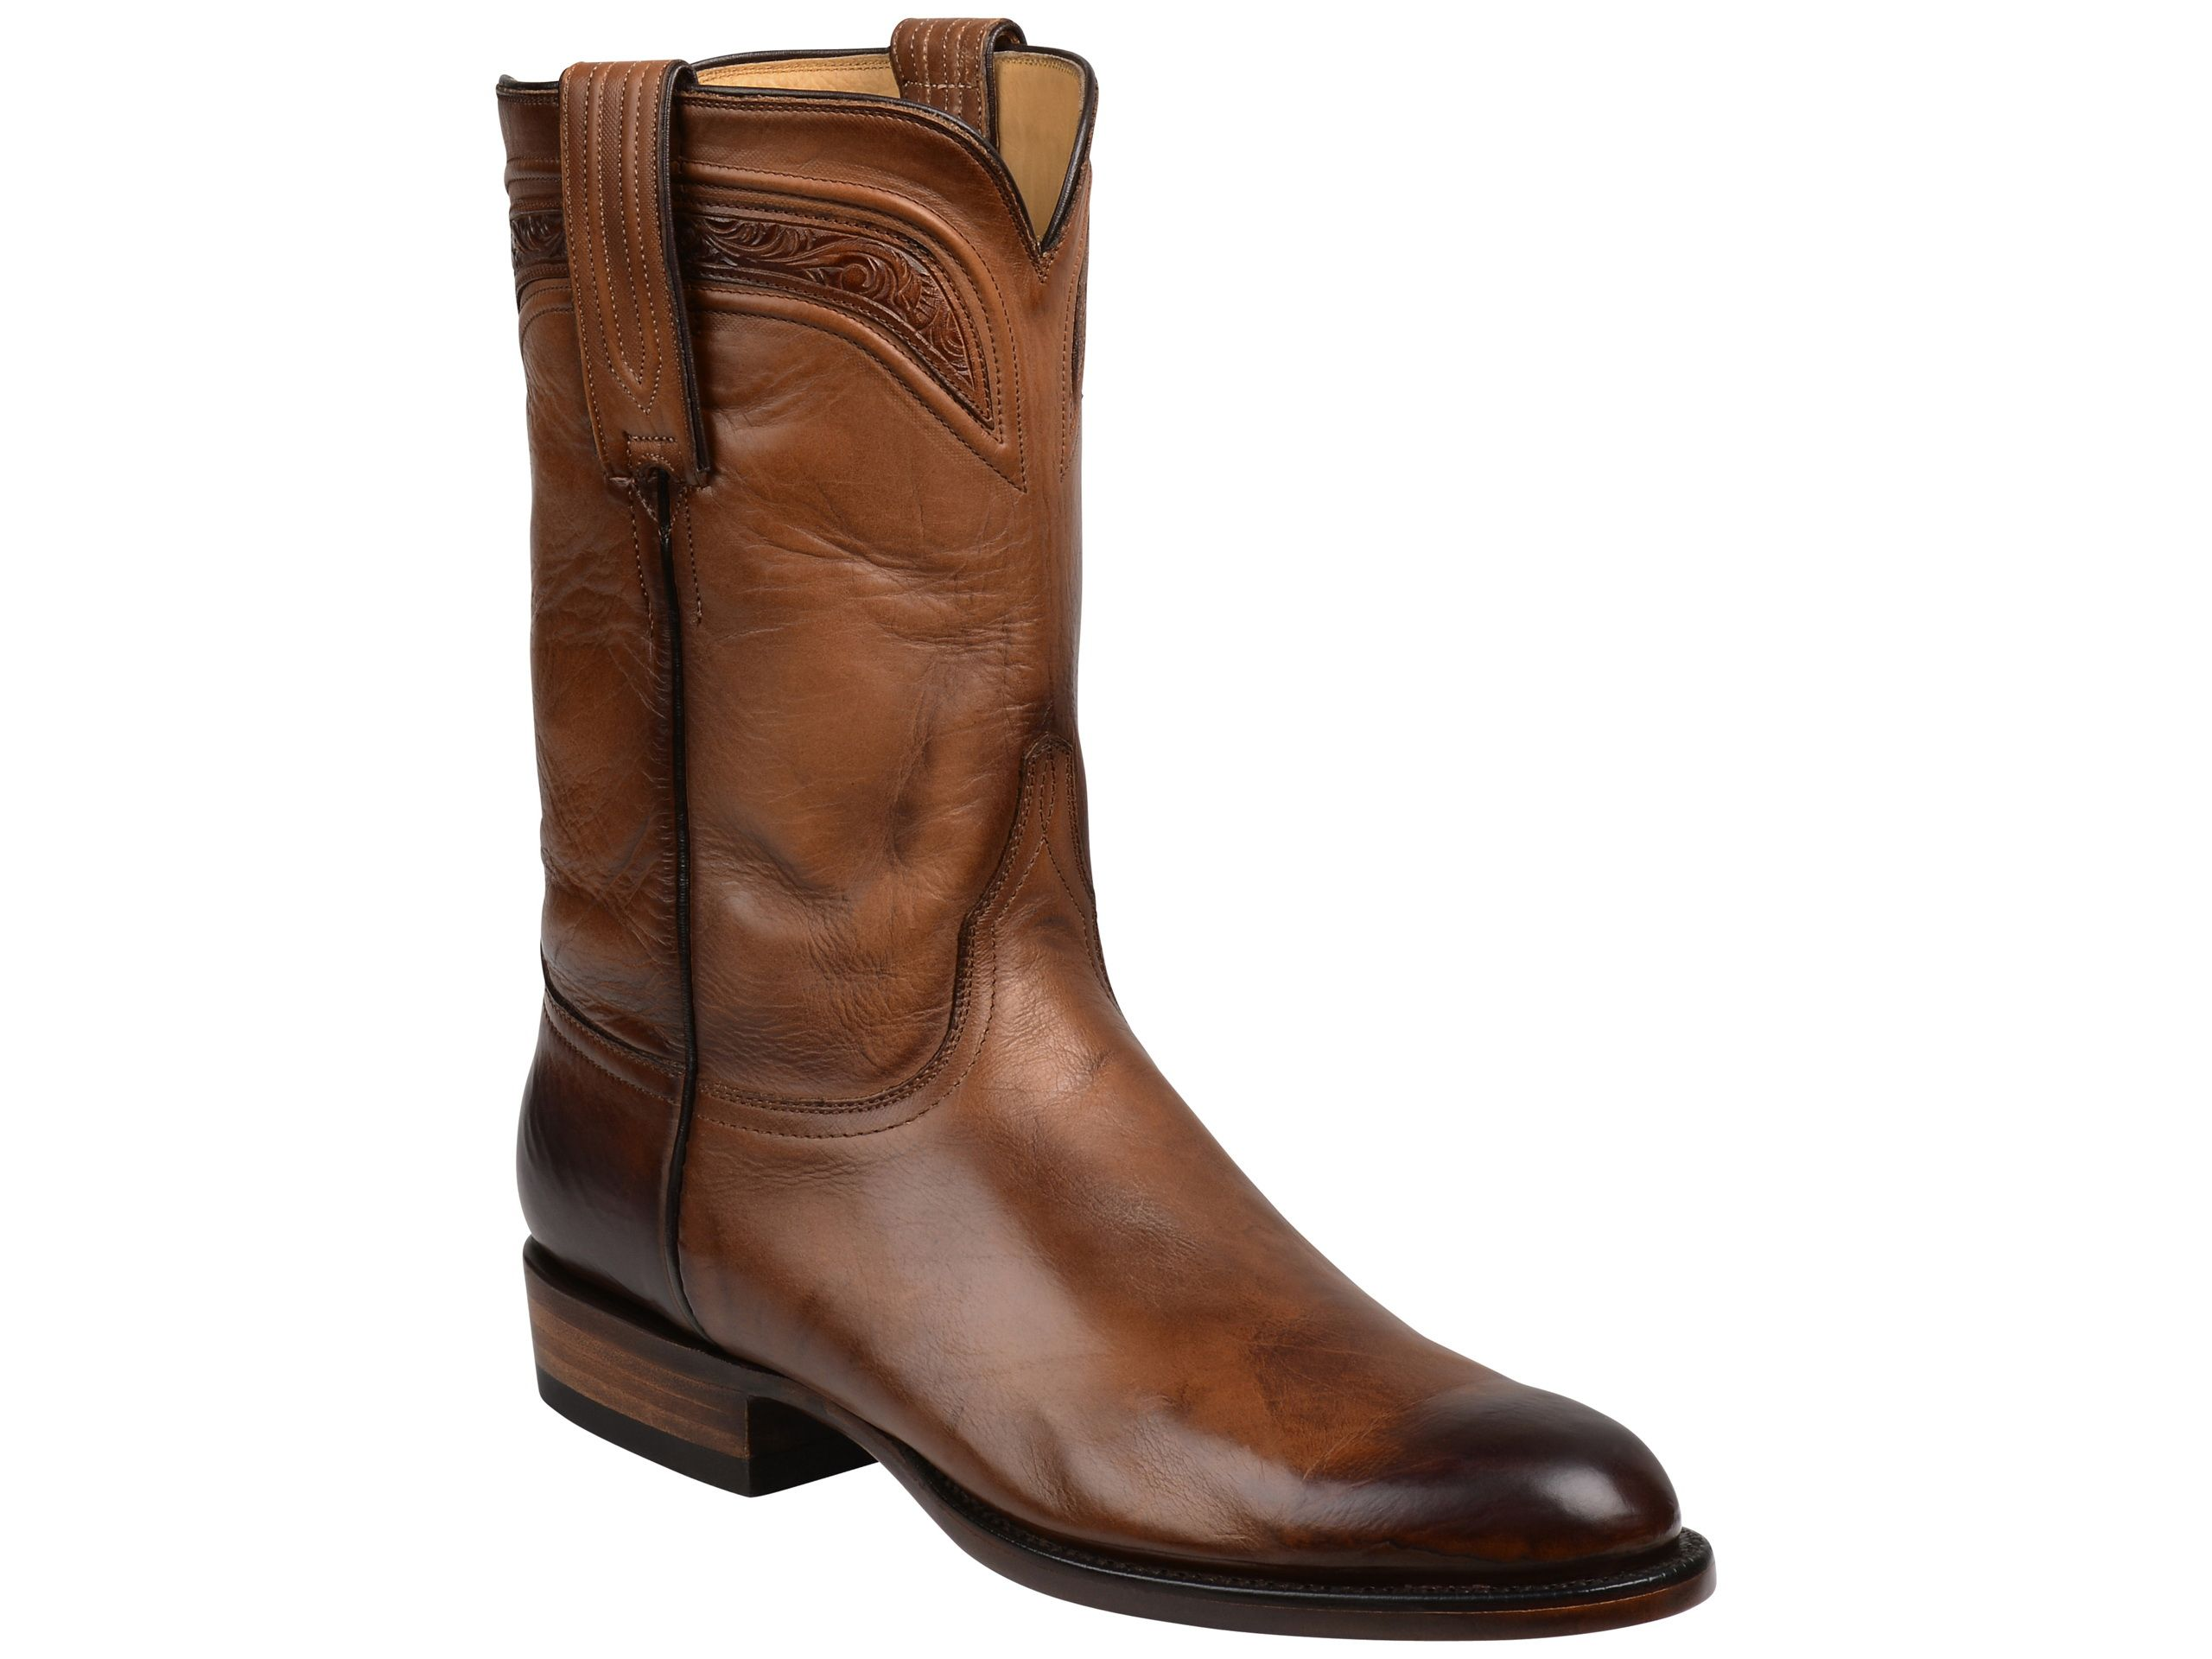 50ef03a8bd2 Sumter | Real Men's Clothing | Roper boots, Boots, Riding boots